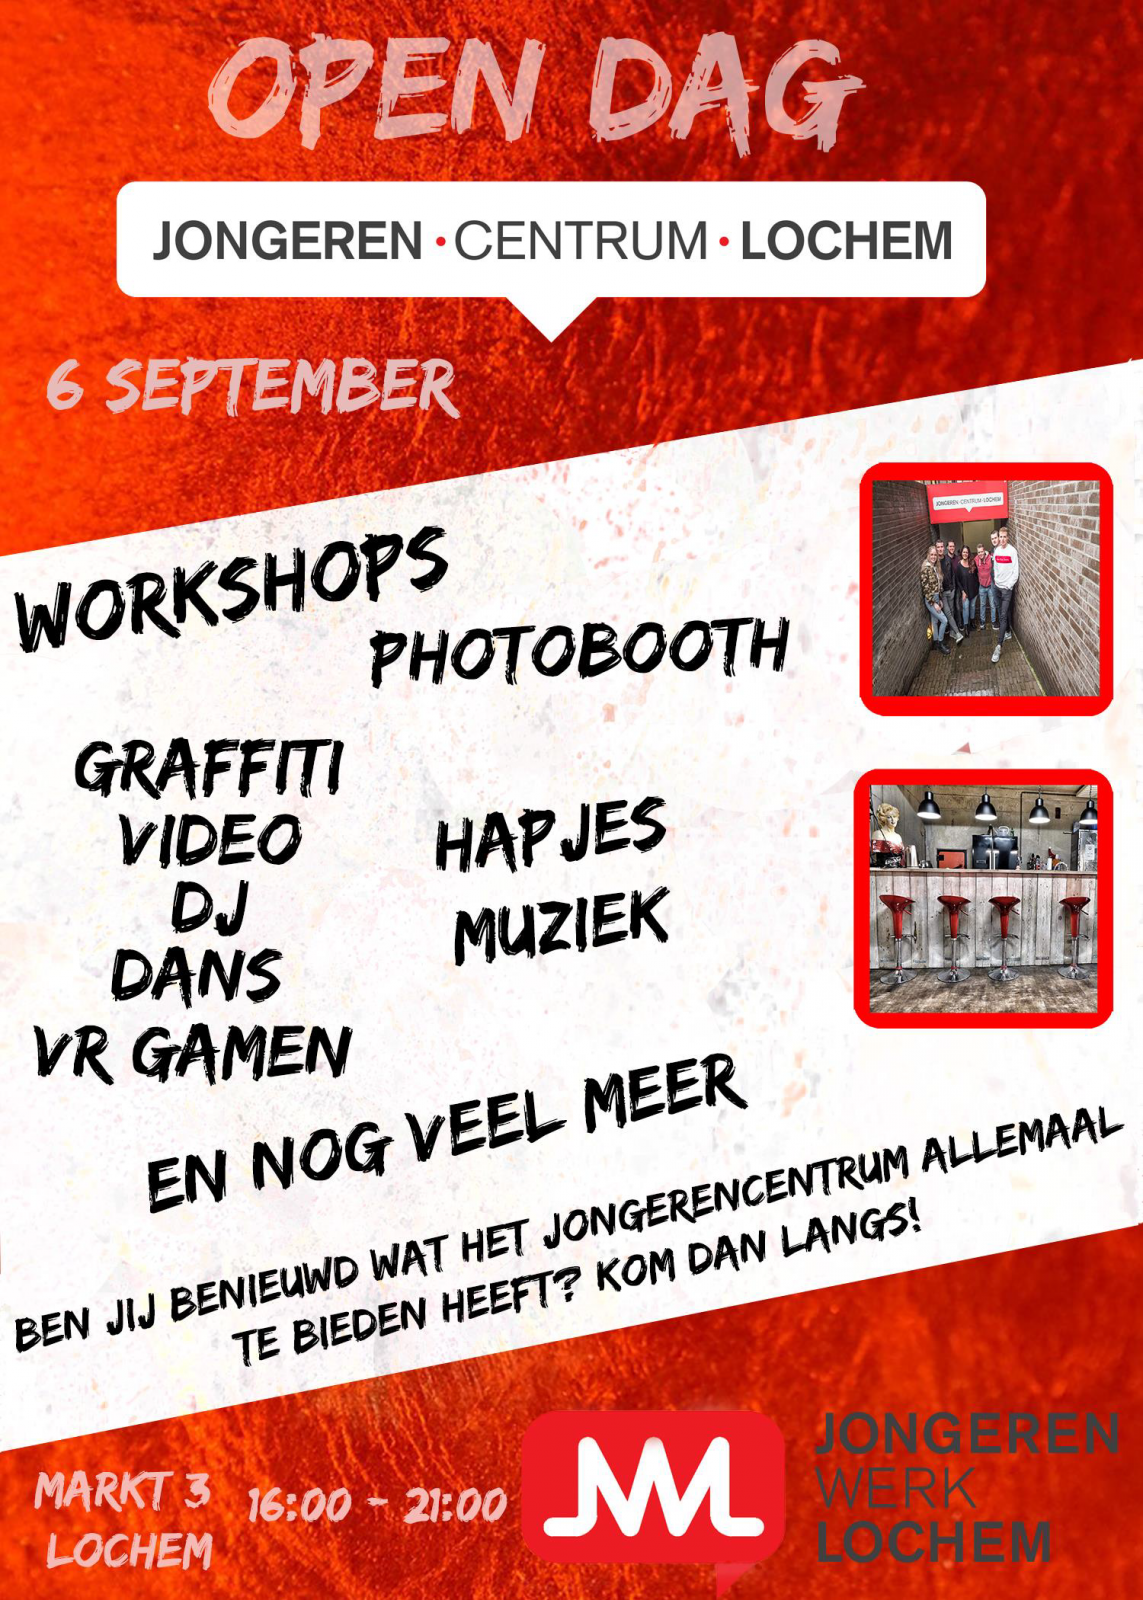 Open dag Jongerencentrum